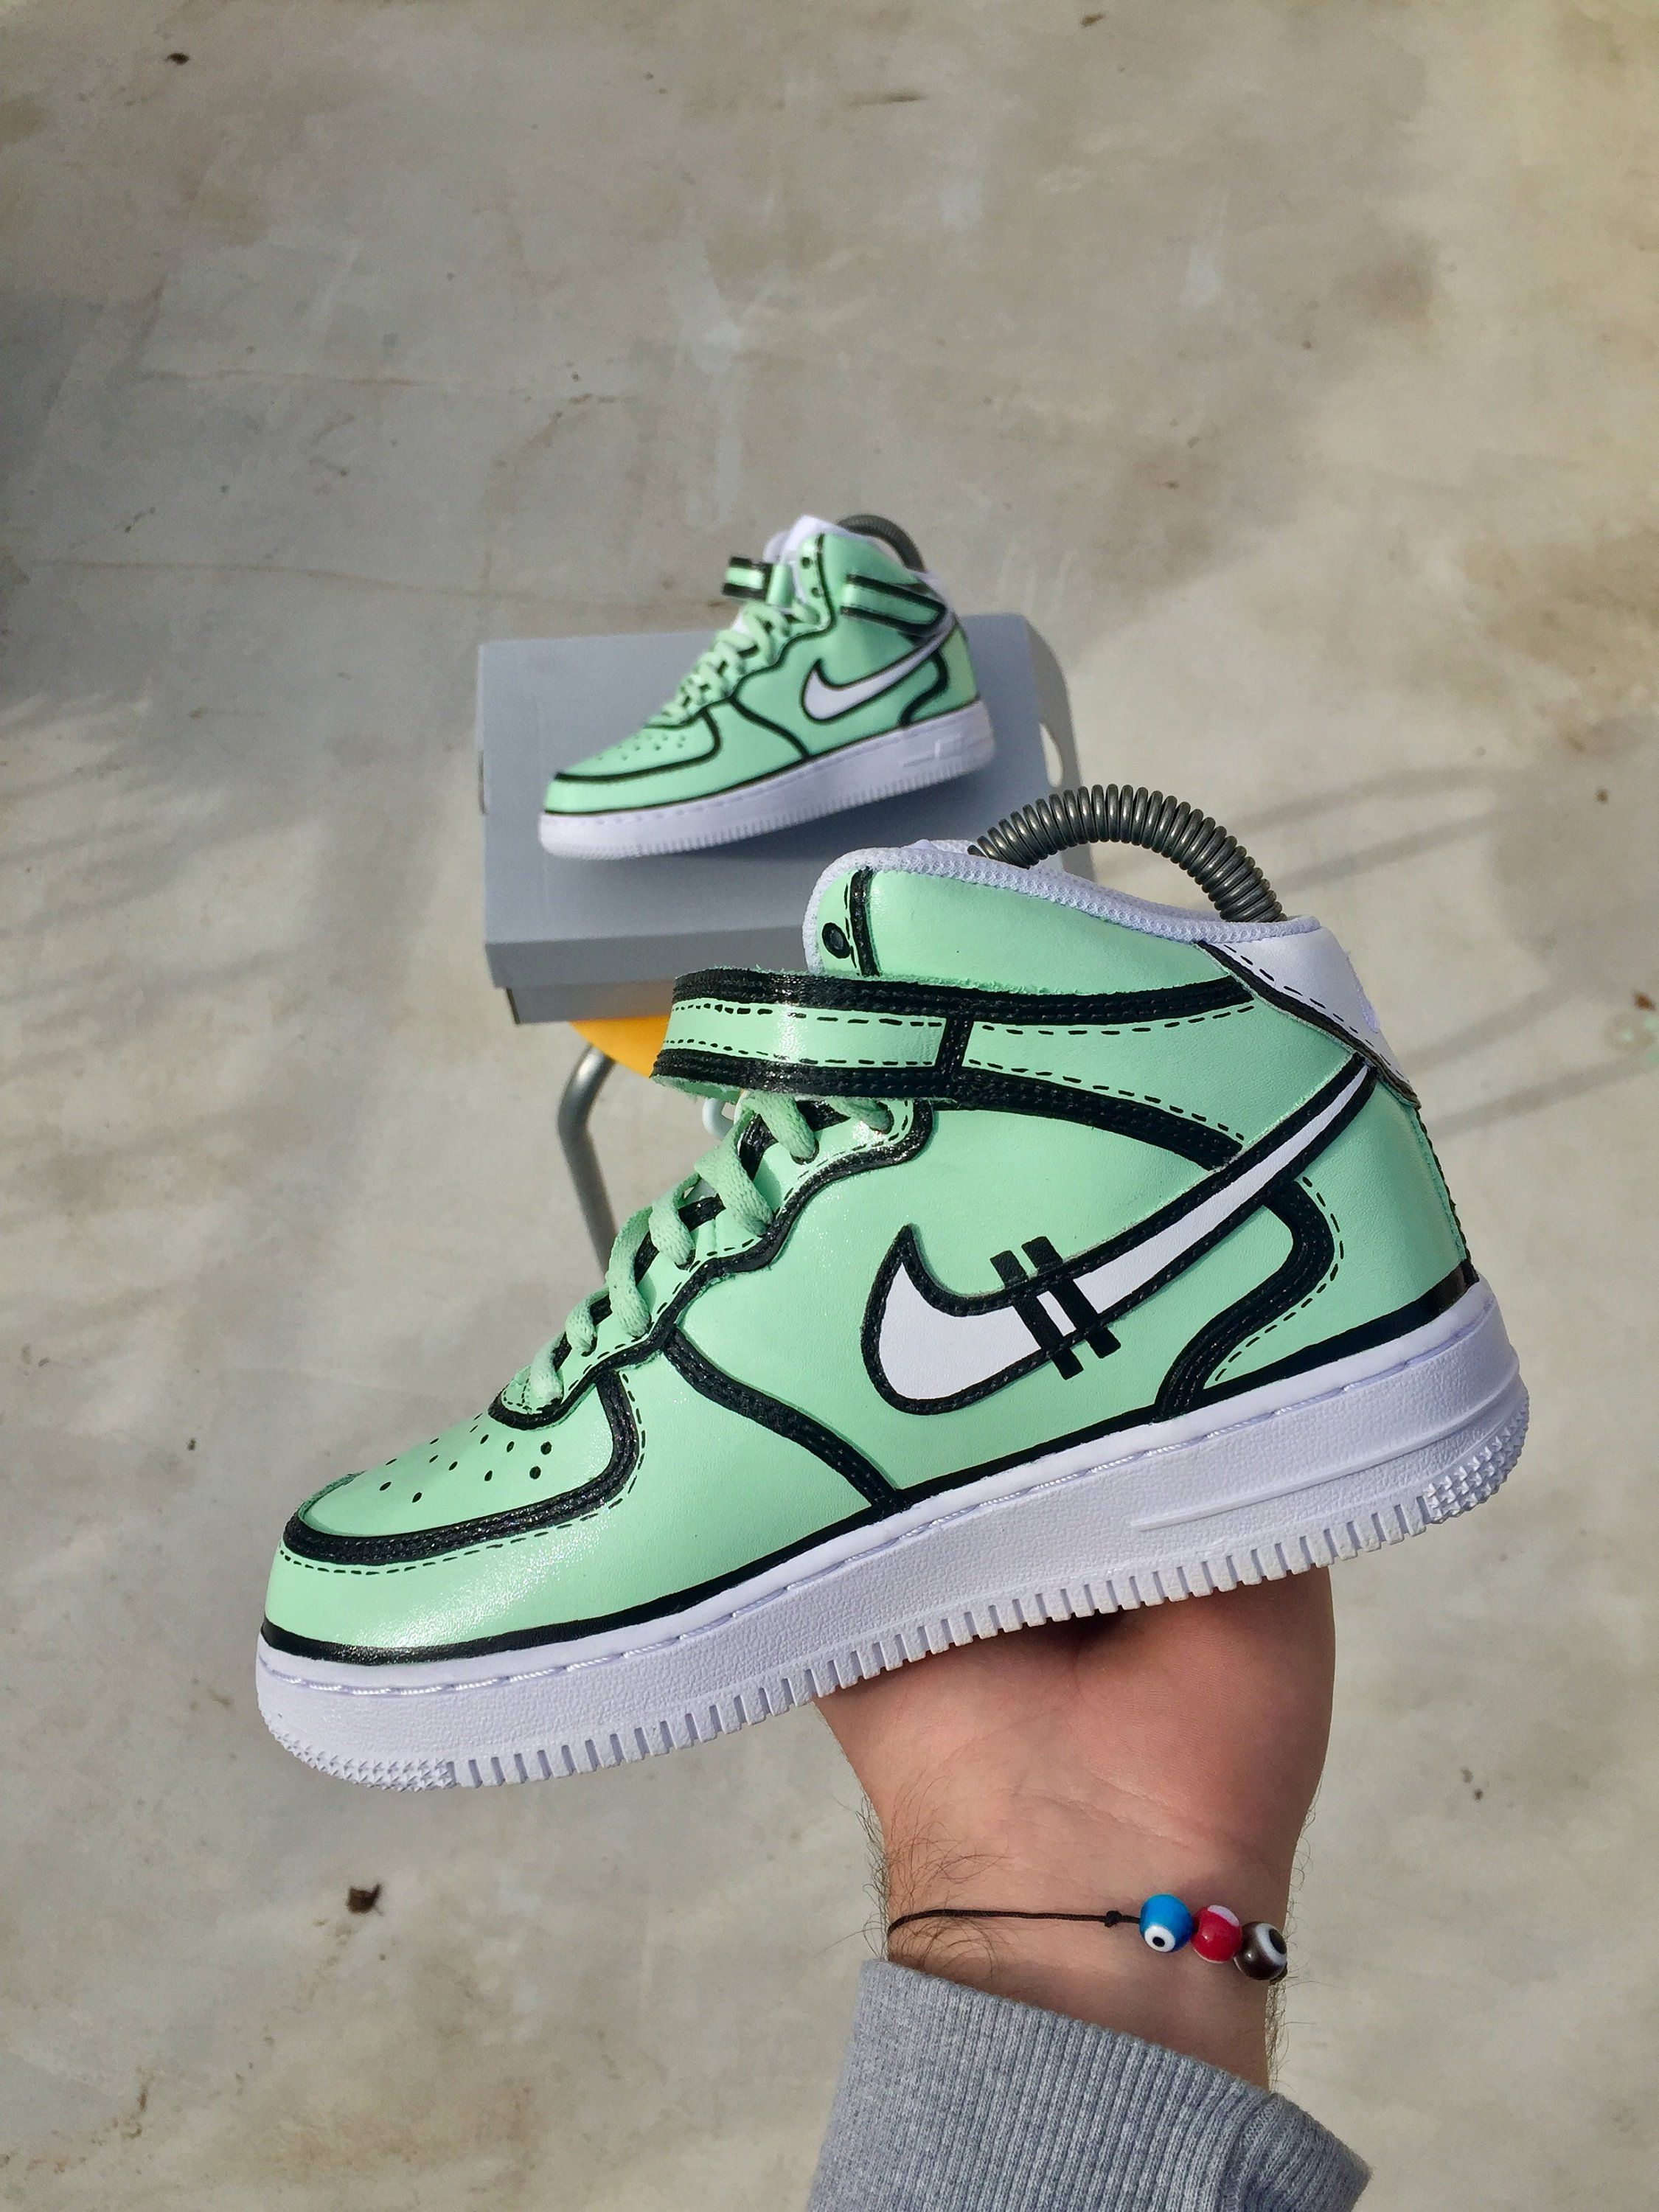 promo code 511bf c98d5 Custom Nike - Nike Nike Air Force 1 Mint x Black Lines - Custom Shoes - Hand  painted - Personalized Custom Kicks - Design your own now!